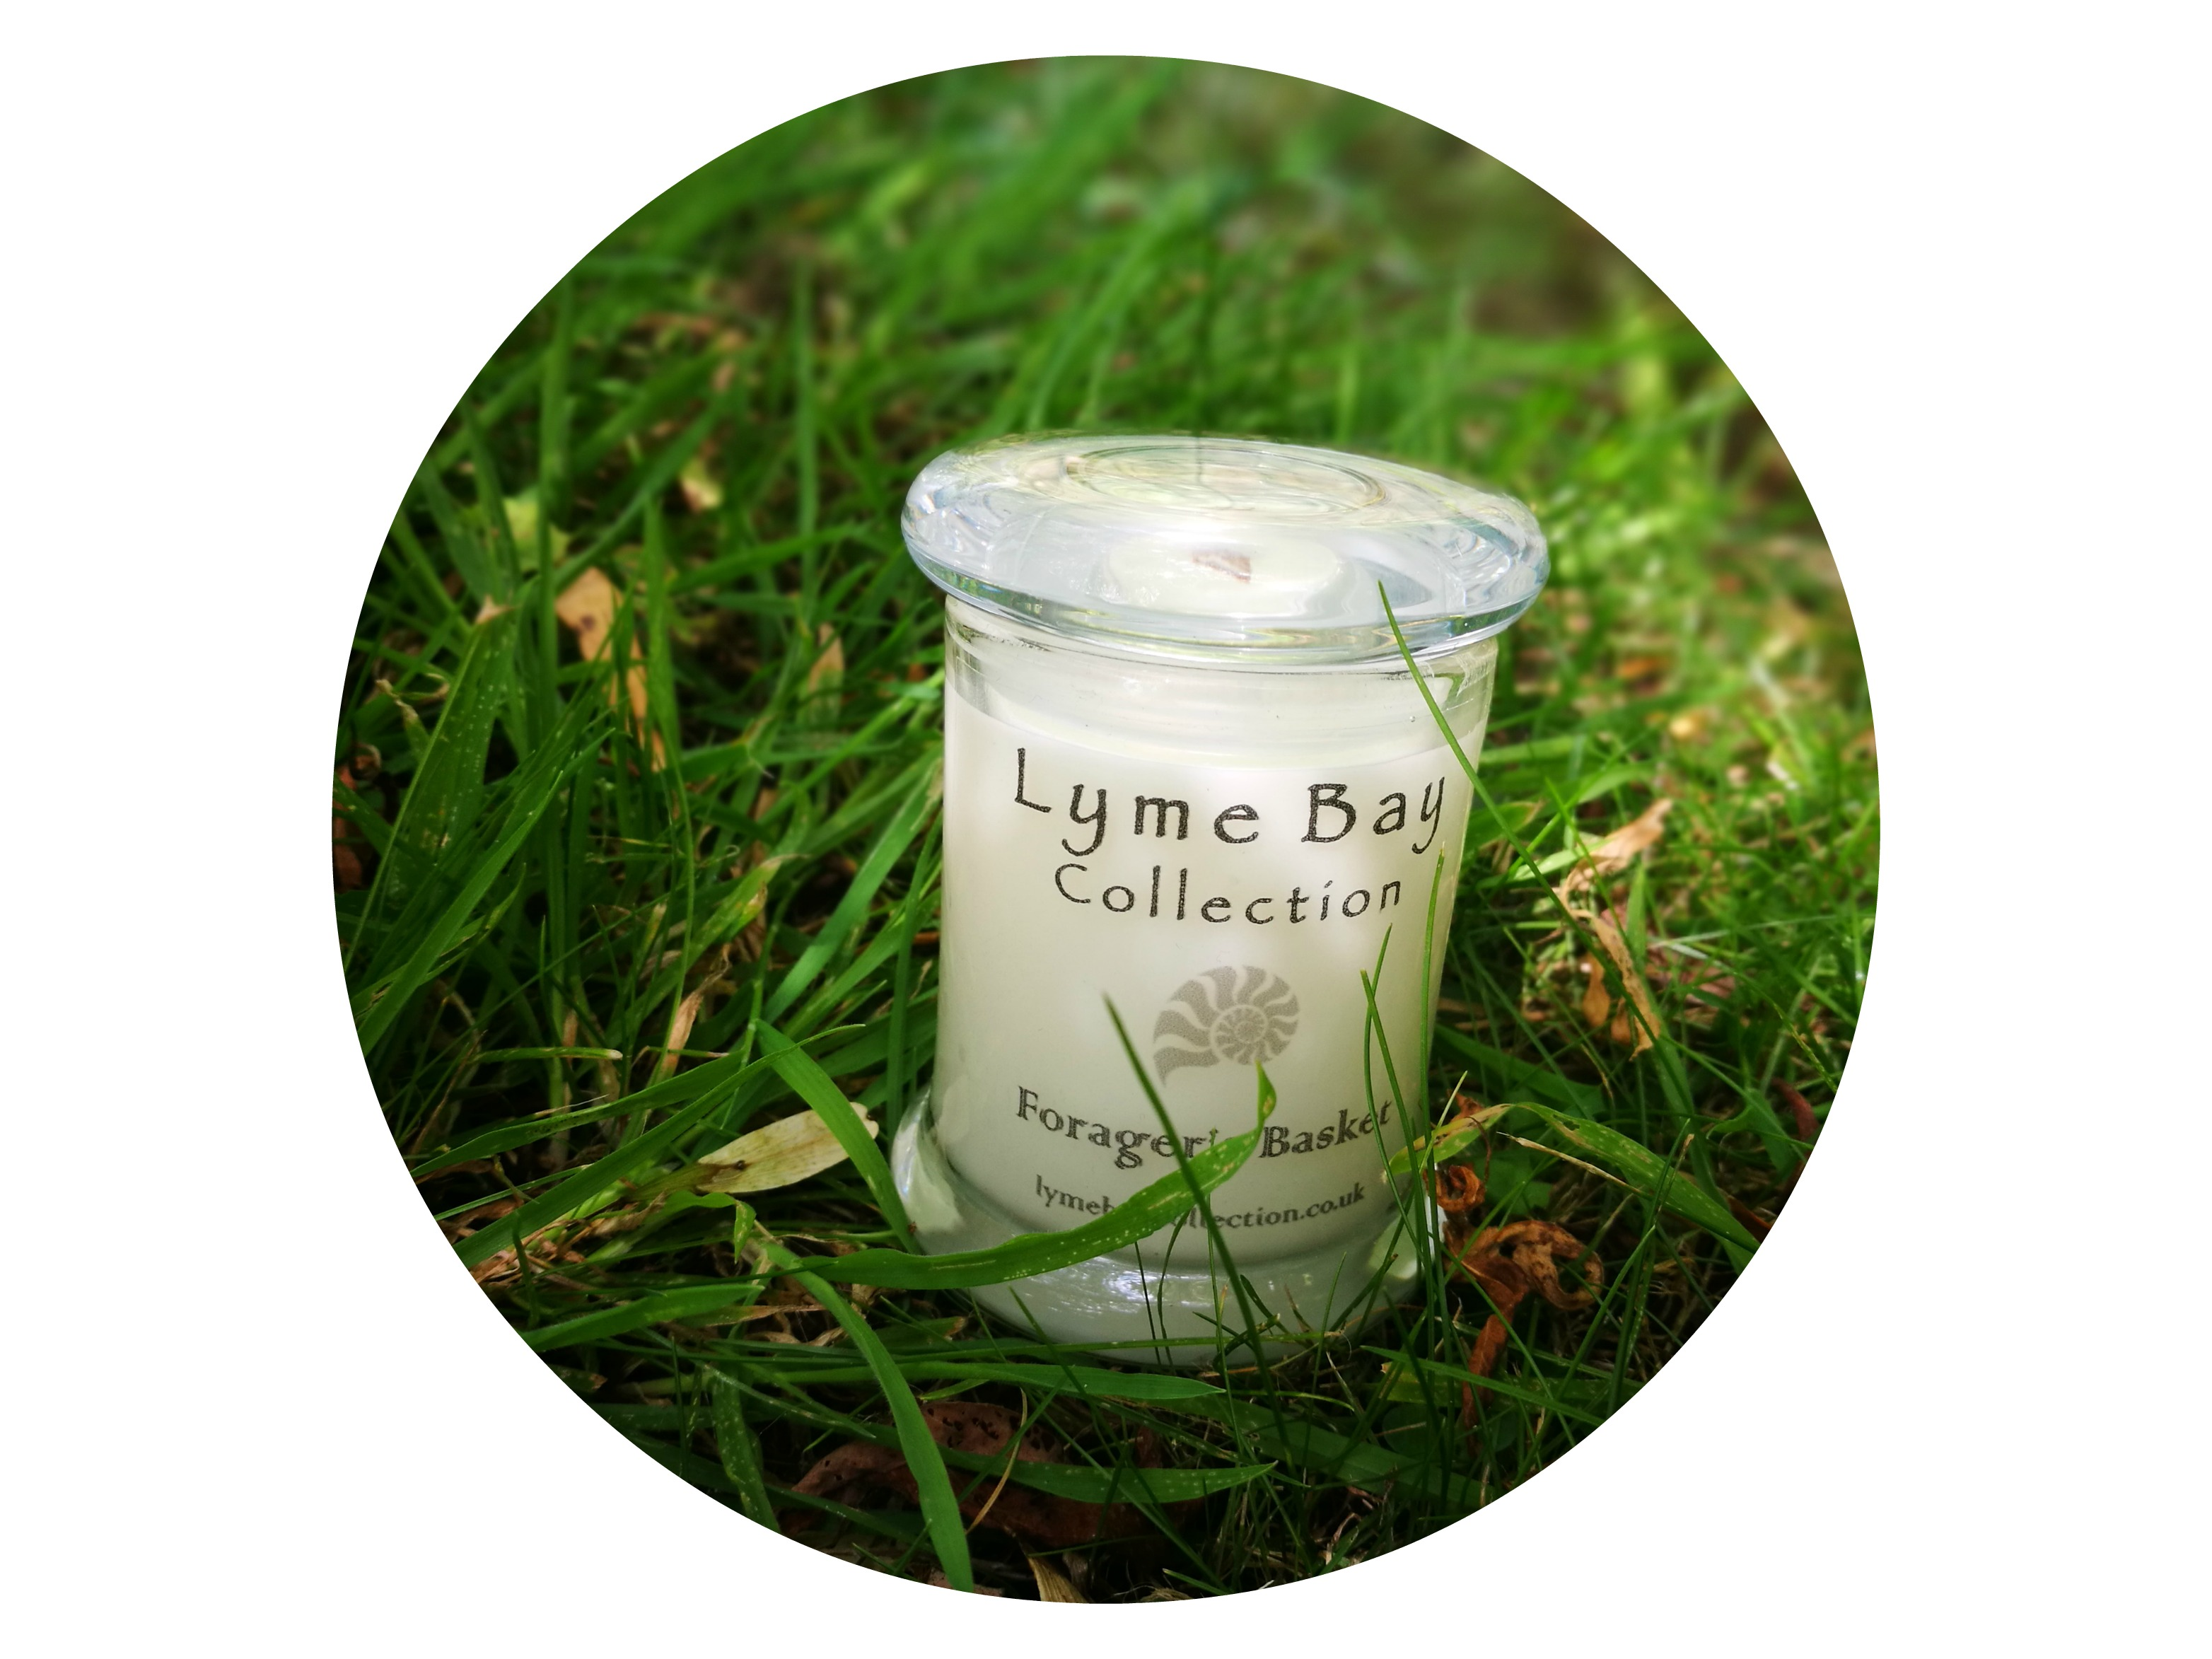 LYME BAY COLLECTION TRAVEL SIZE CANDLE